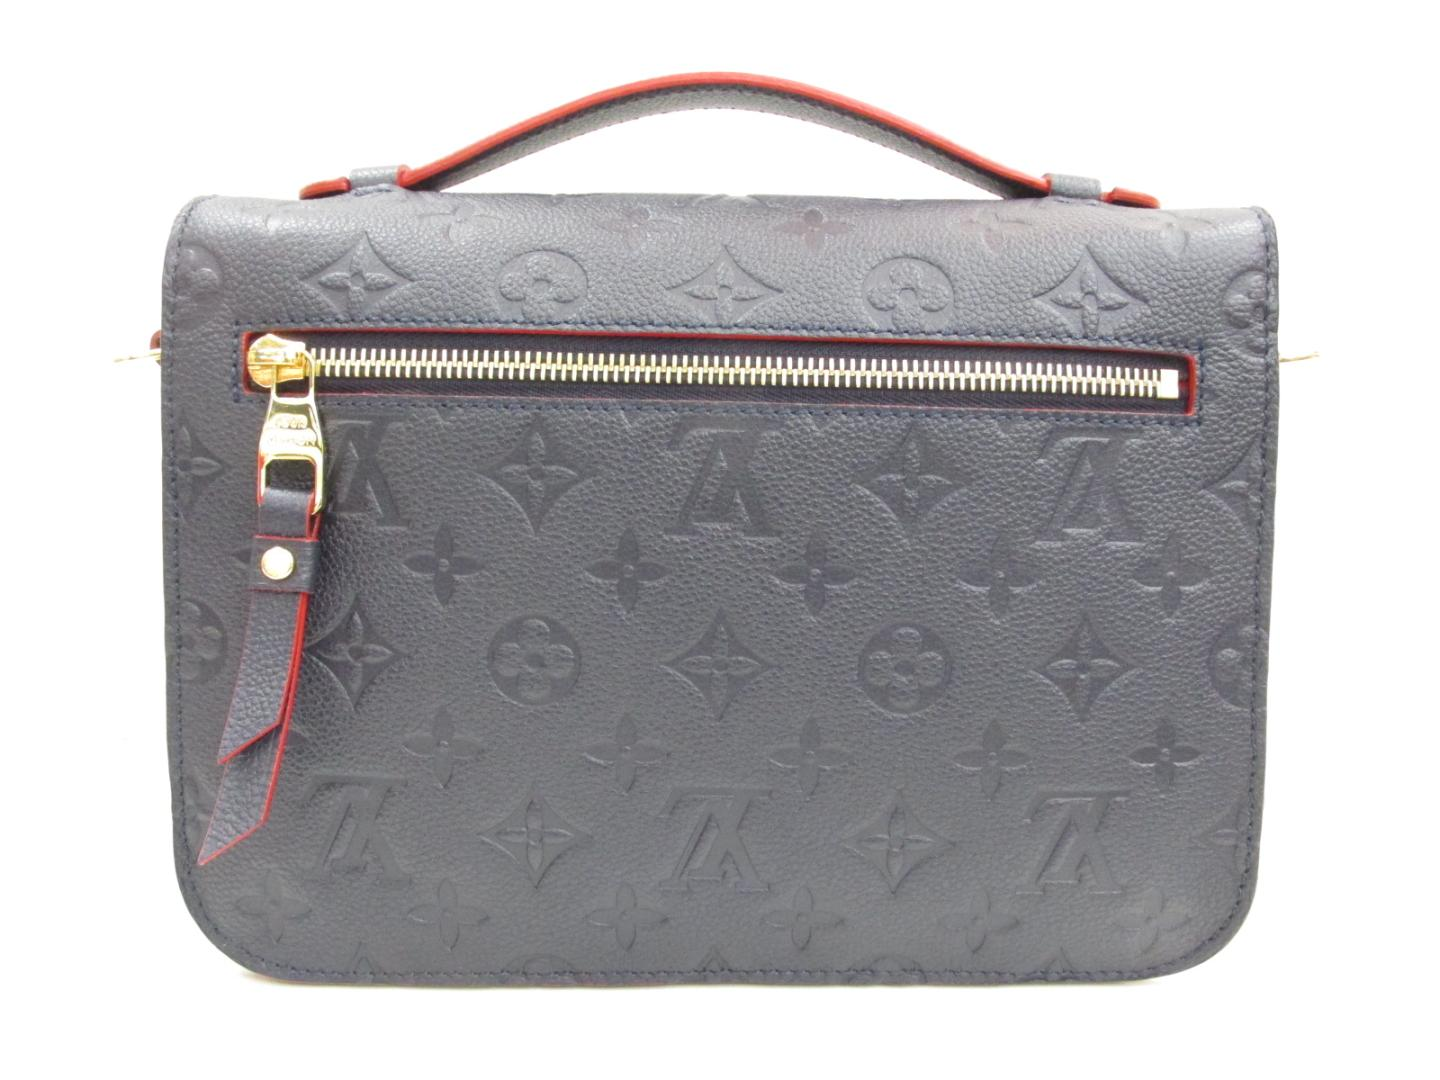 Brandoff Authentic Louis Vuitton Pochette Metis Mm Shoulder Hand